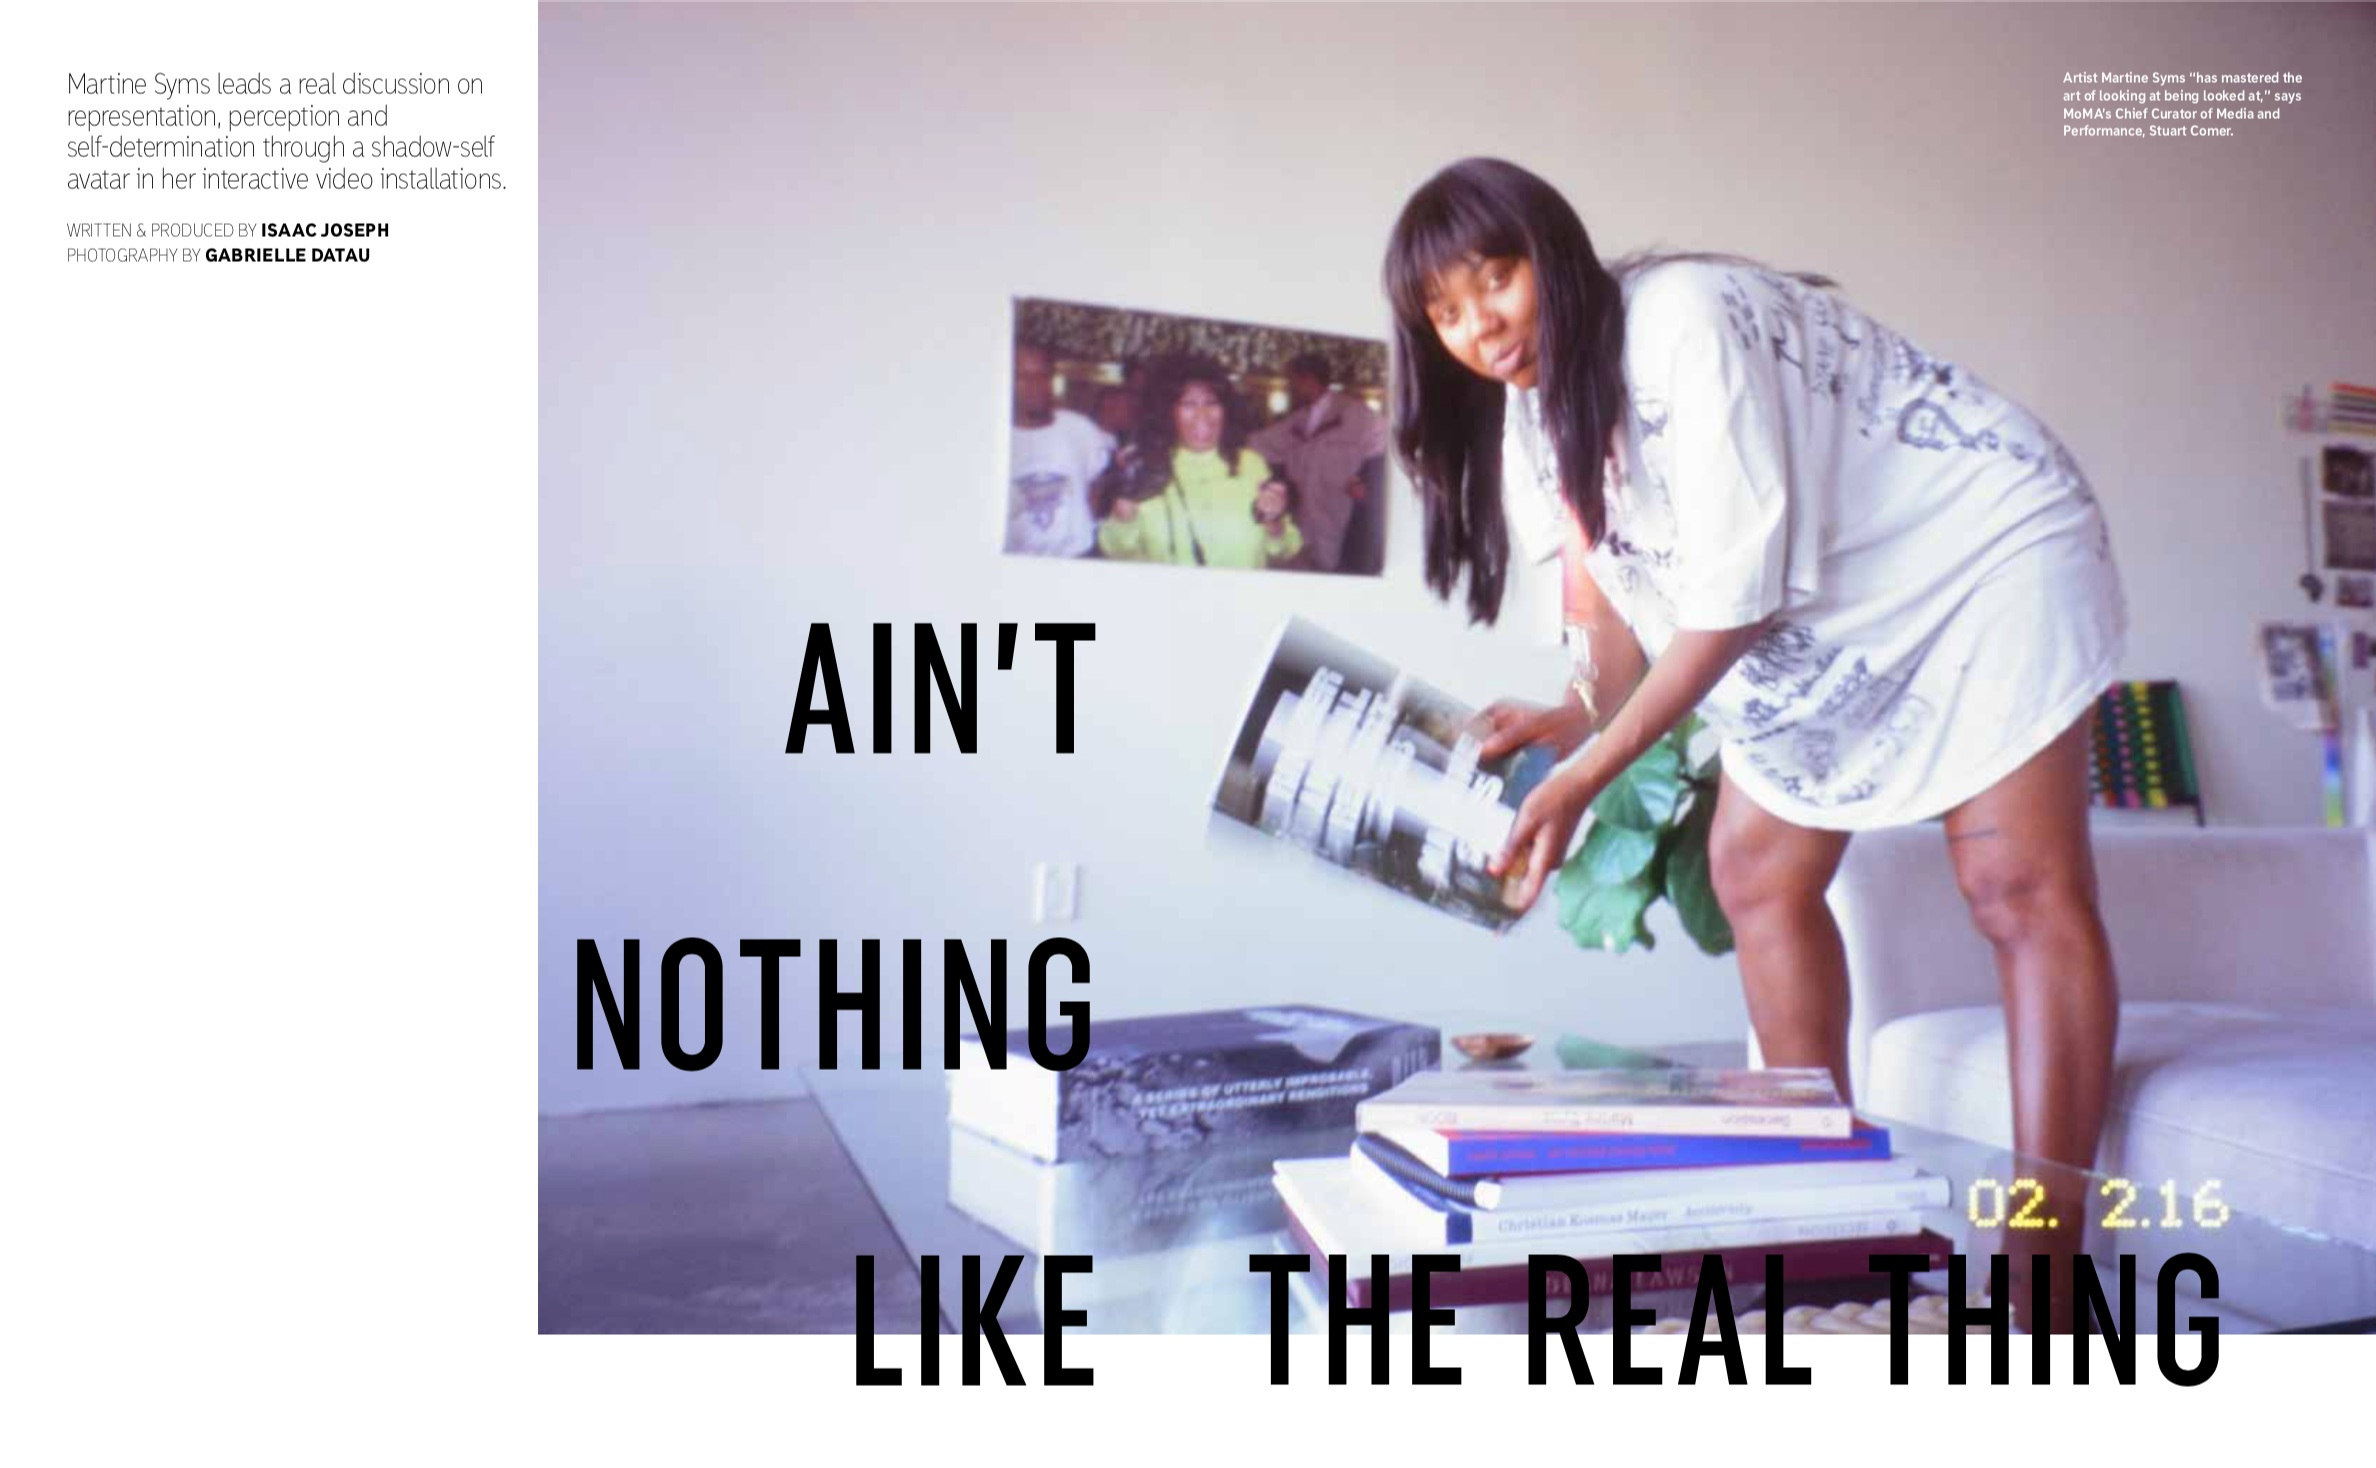 ARTICLE: Martine Syms LALA Summer 2019 -